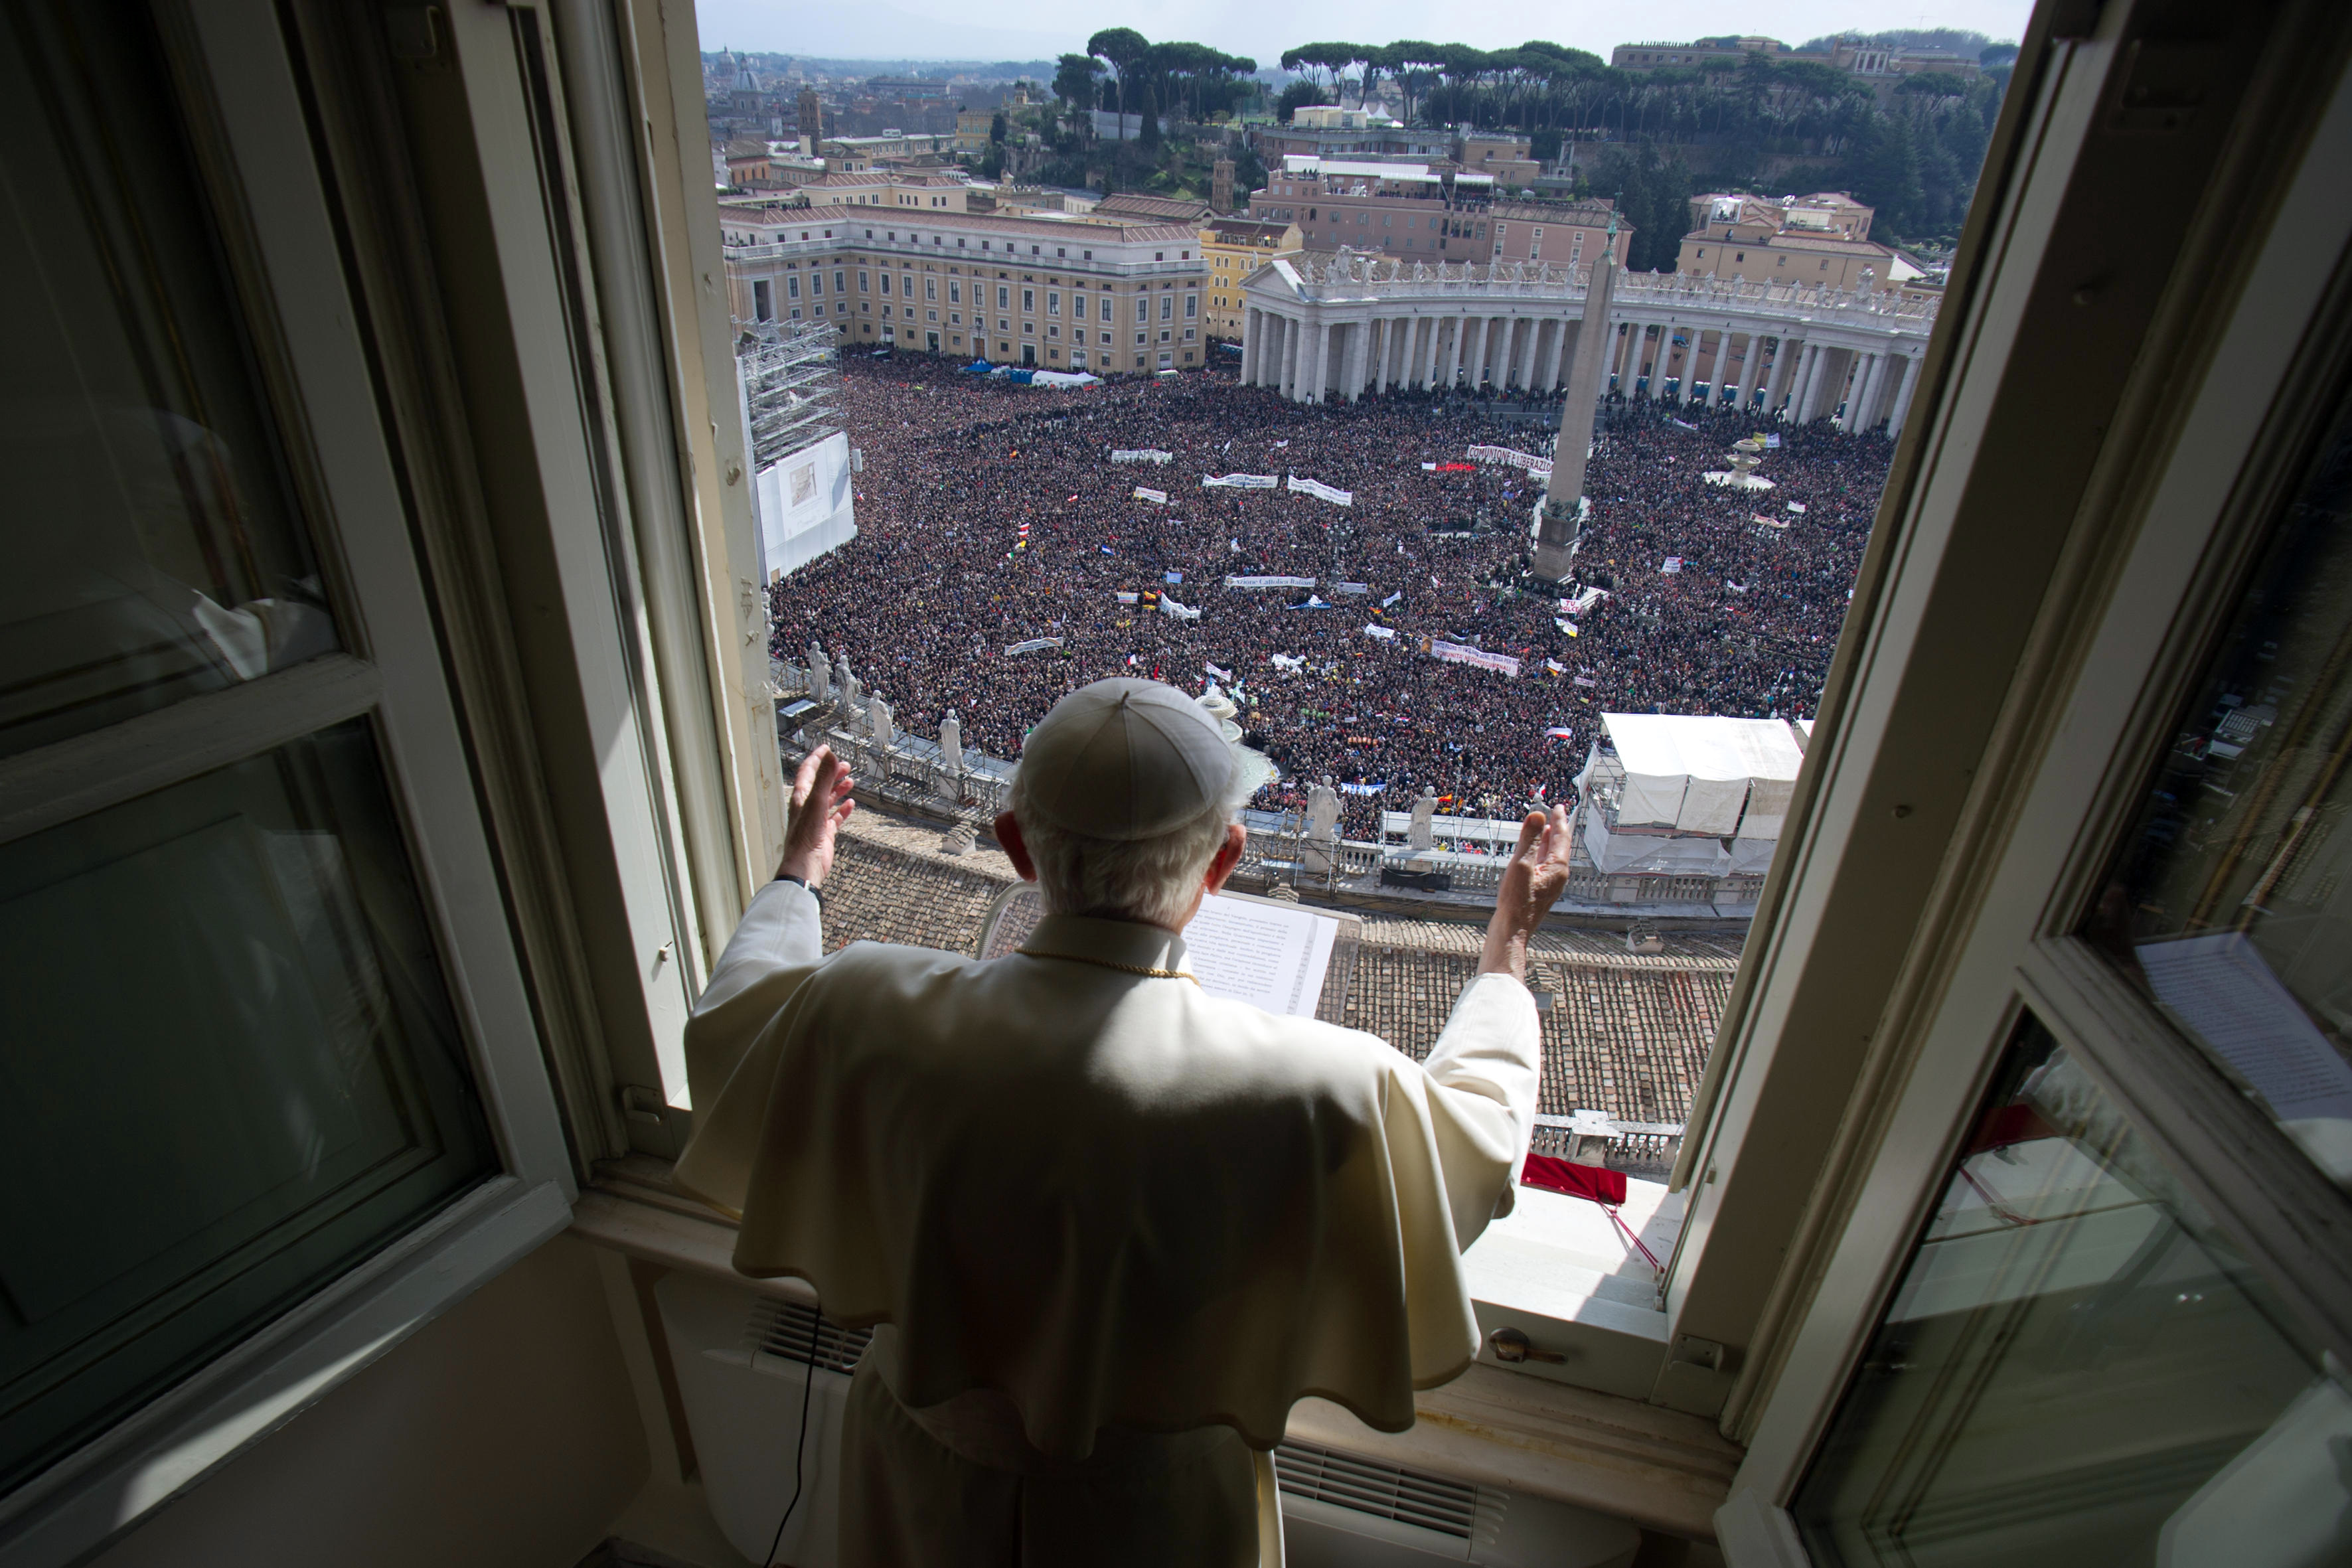 Pope Benedict XVI gives final Sunday blessing before resigning